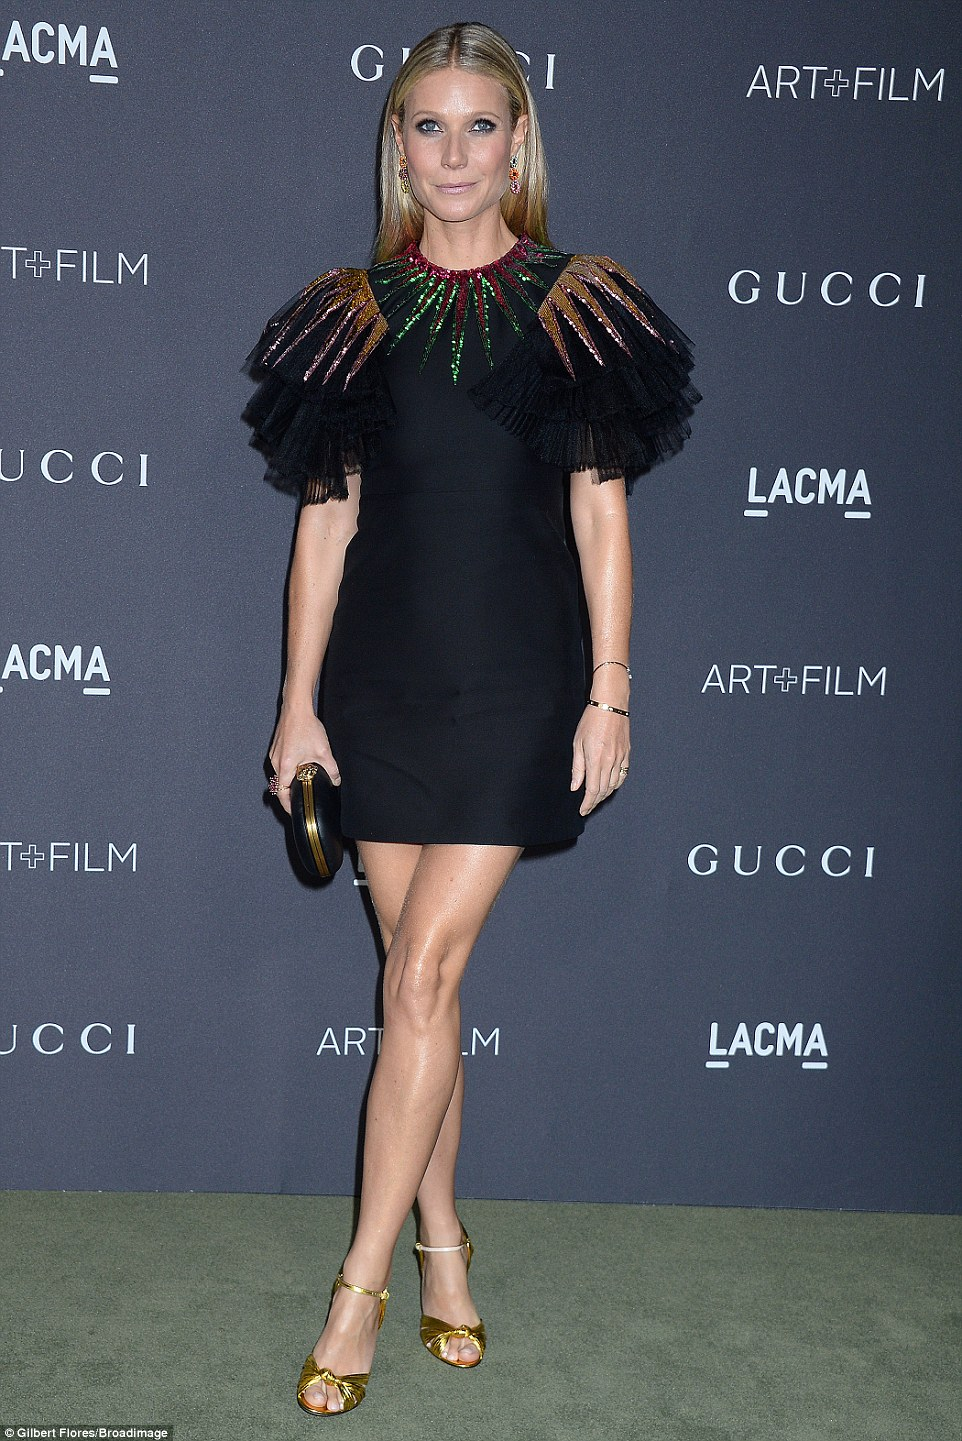 Gwyneth Paltrow puts legs on show at the LACMA Art + Film Gala in LA